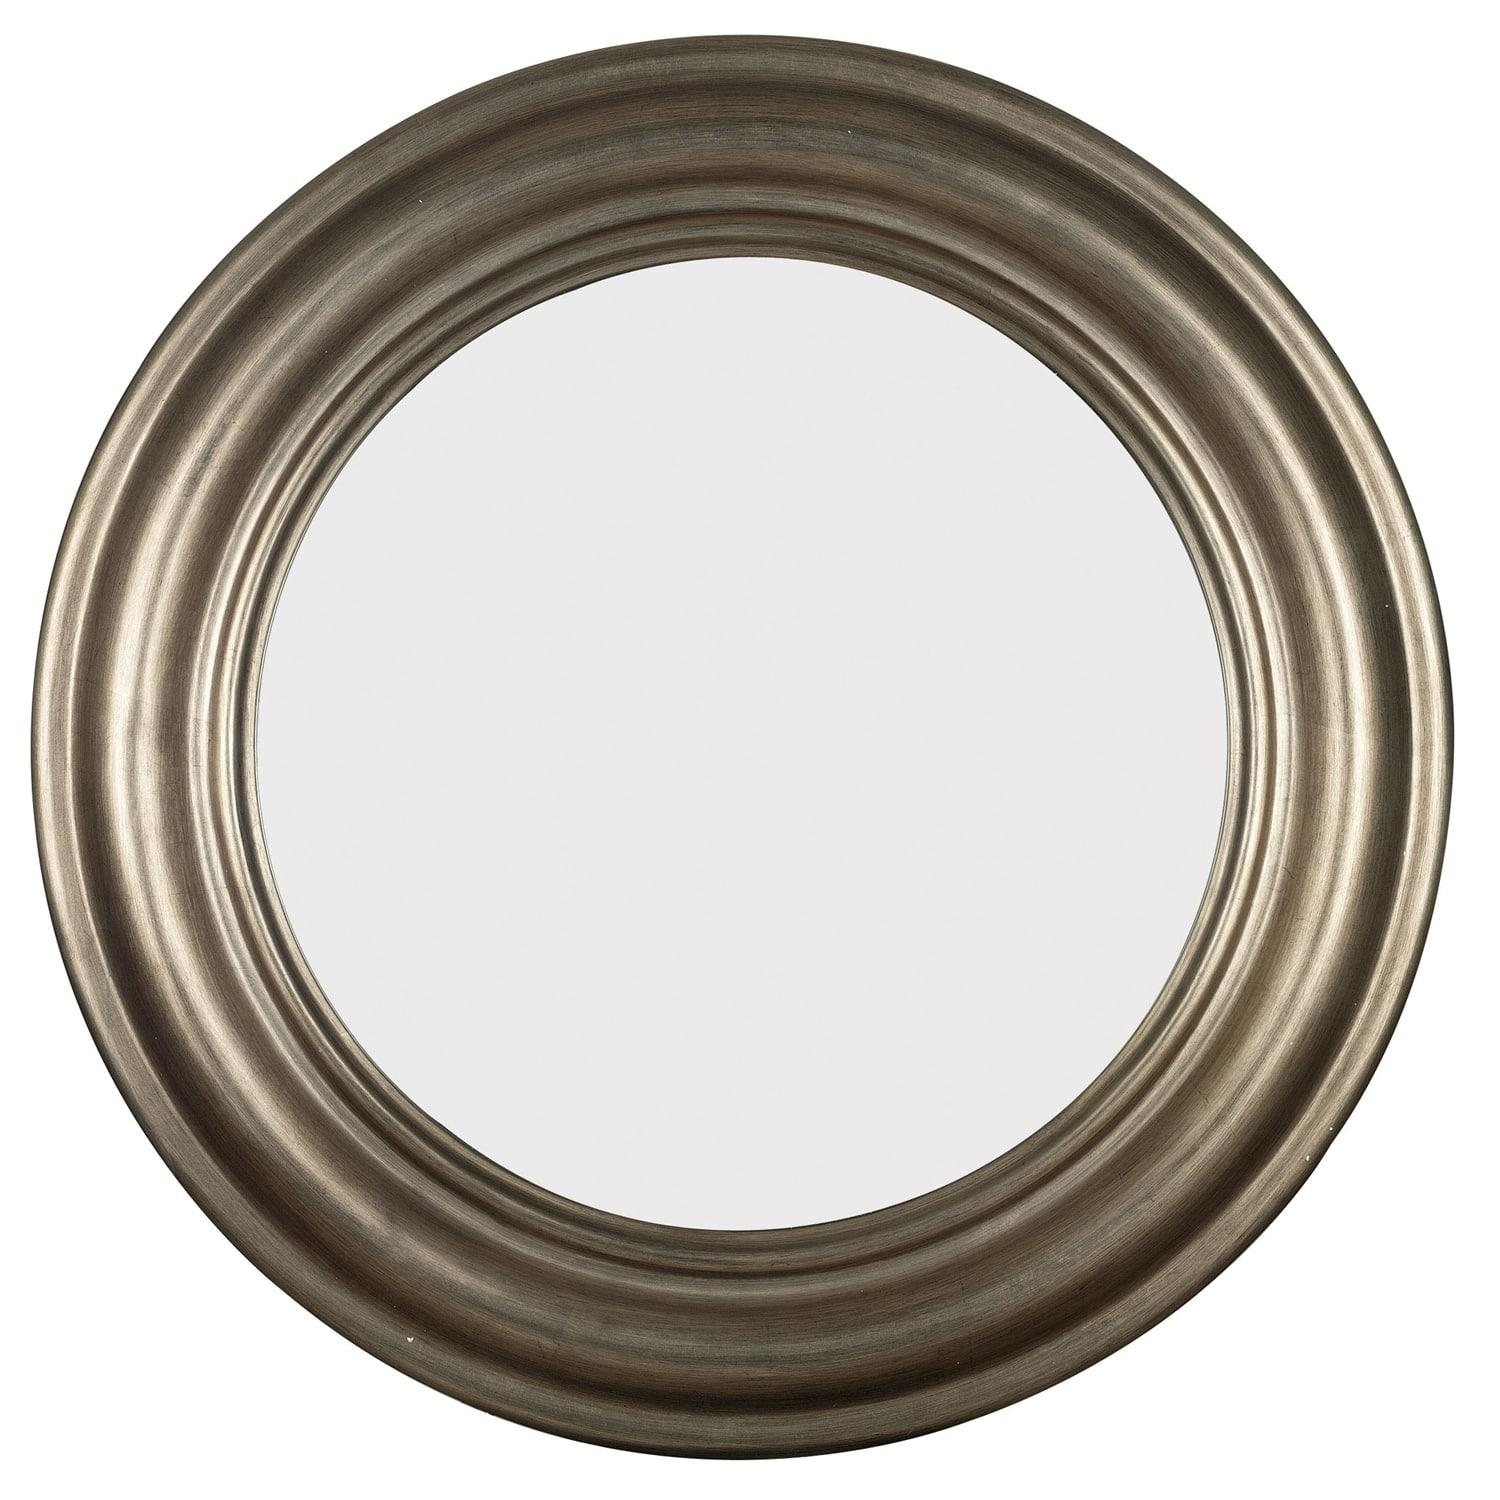 Pasco Round Antique Silver Wall Mirror – Free Shipping Today Pertaining To Antique Round Mirror (Image 15 of 20)